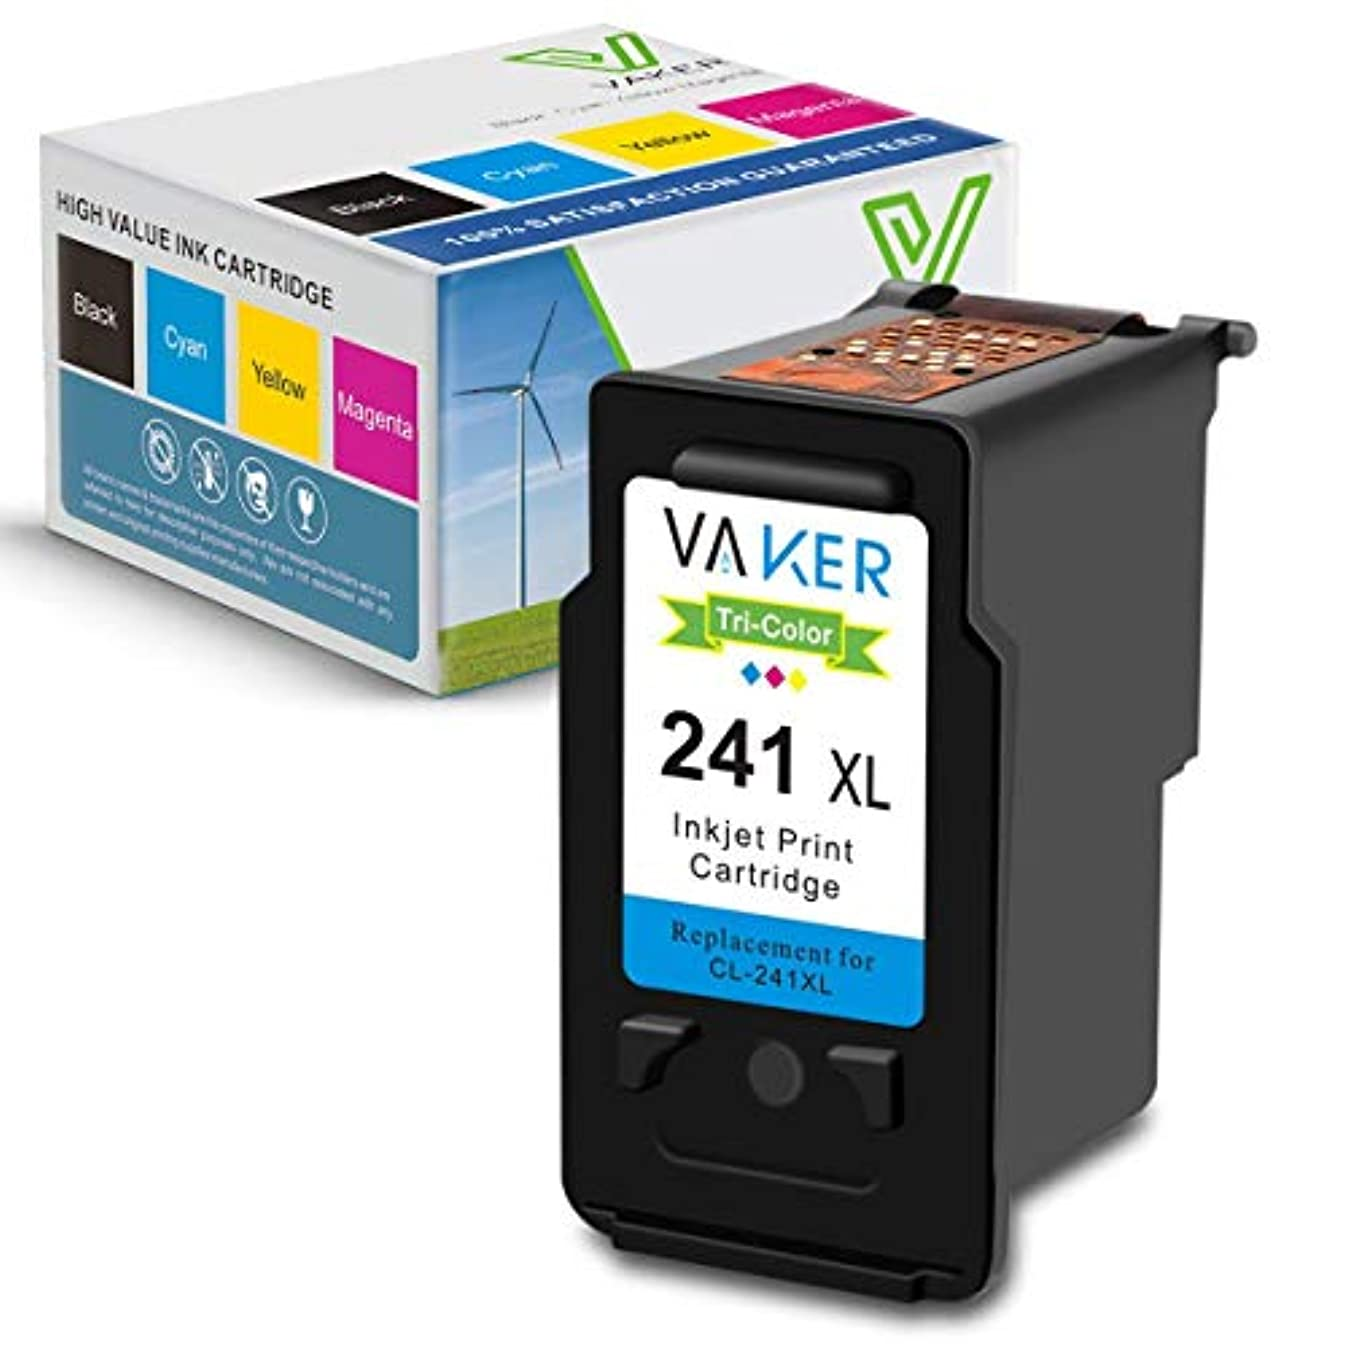 VAKER Remanufactured Ink Cartridge Replacement for Canon CL-241XL 241 XL Used in PIXMA MG3620 MX472 MX452 MG2220 MG3220 MG3520 MG3522 MG2120 MX392 MX432 MX512 MX532 MX522 TS5120 (1 Tri-Color)